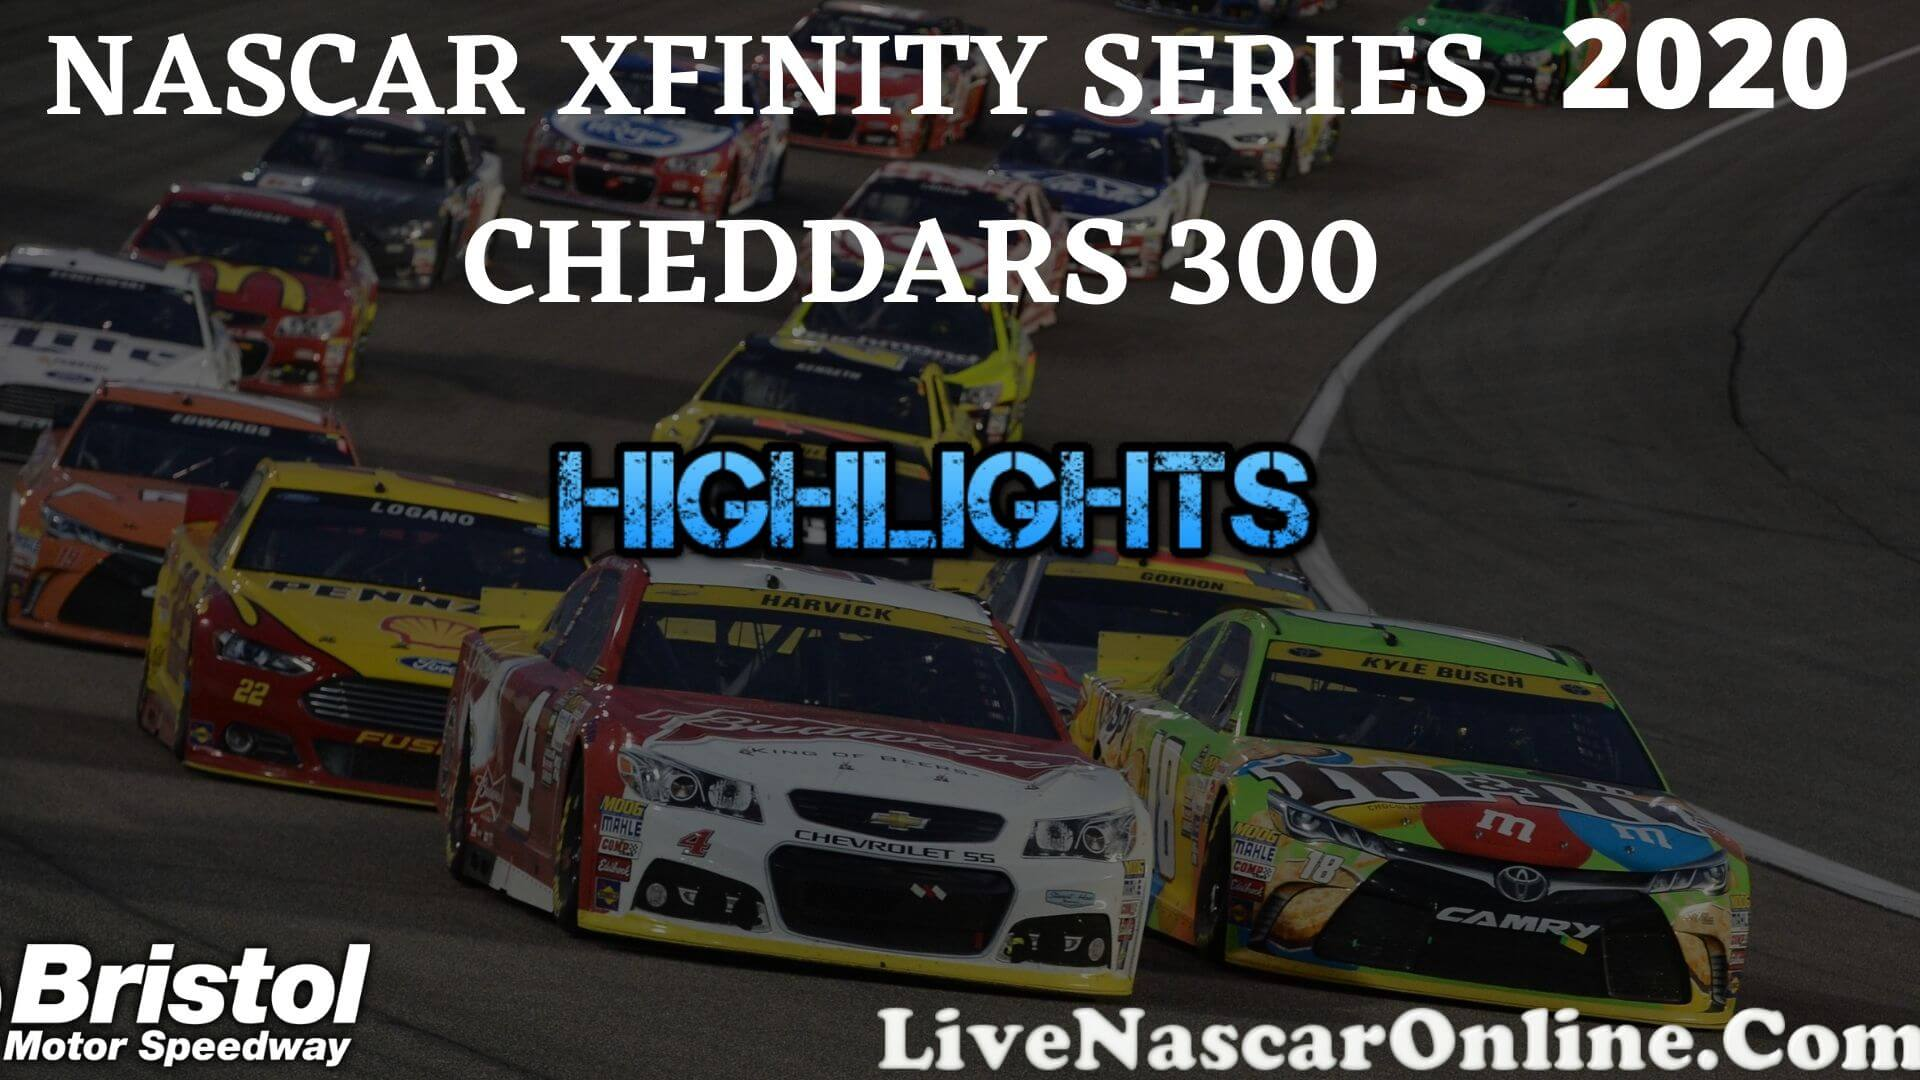 Cheddars 500 Xfinity Series Highlights 2020